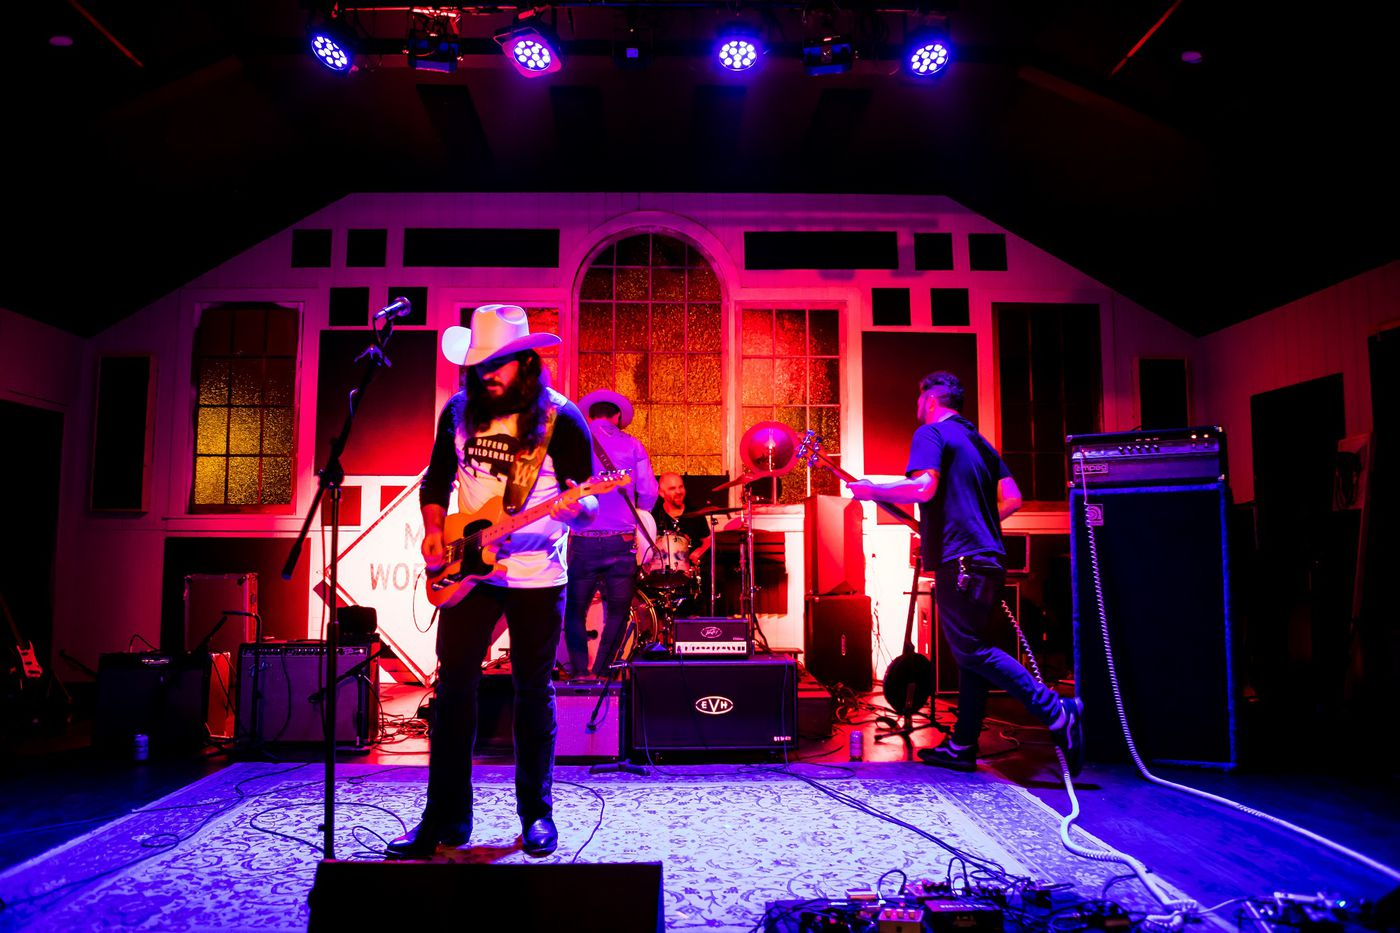 Dalton Wayne and the Warmadillos are looking to make a big splash at this year's Hogs for a Cause festival in March. They're the only true DIY band on a bill full of Grammy Award winning and nominated artists from all over the globe.